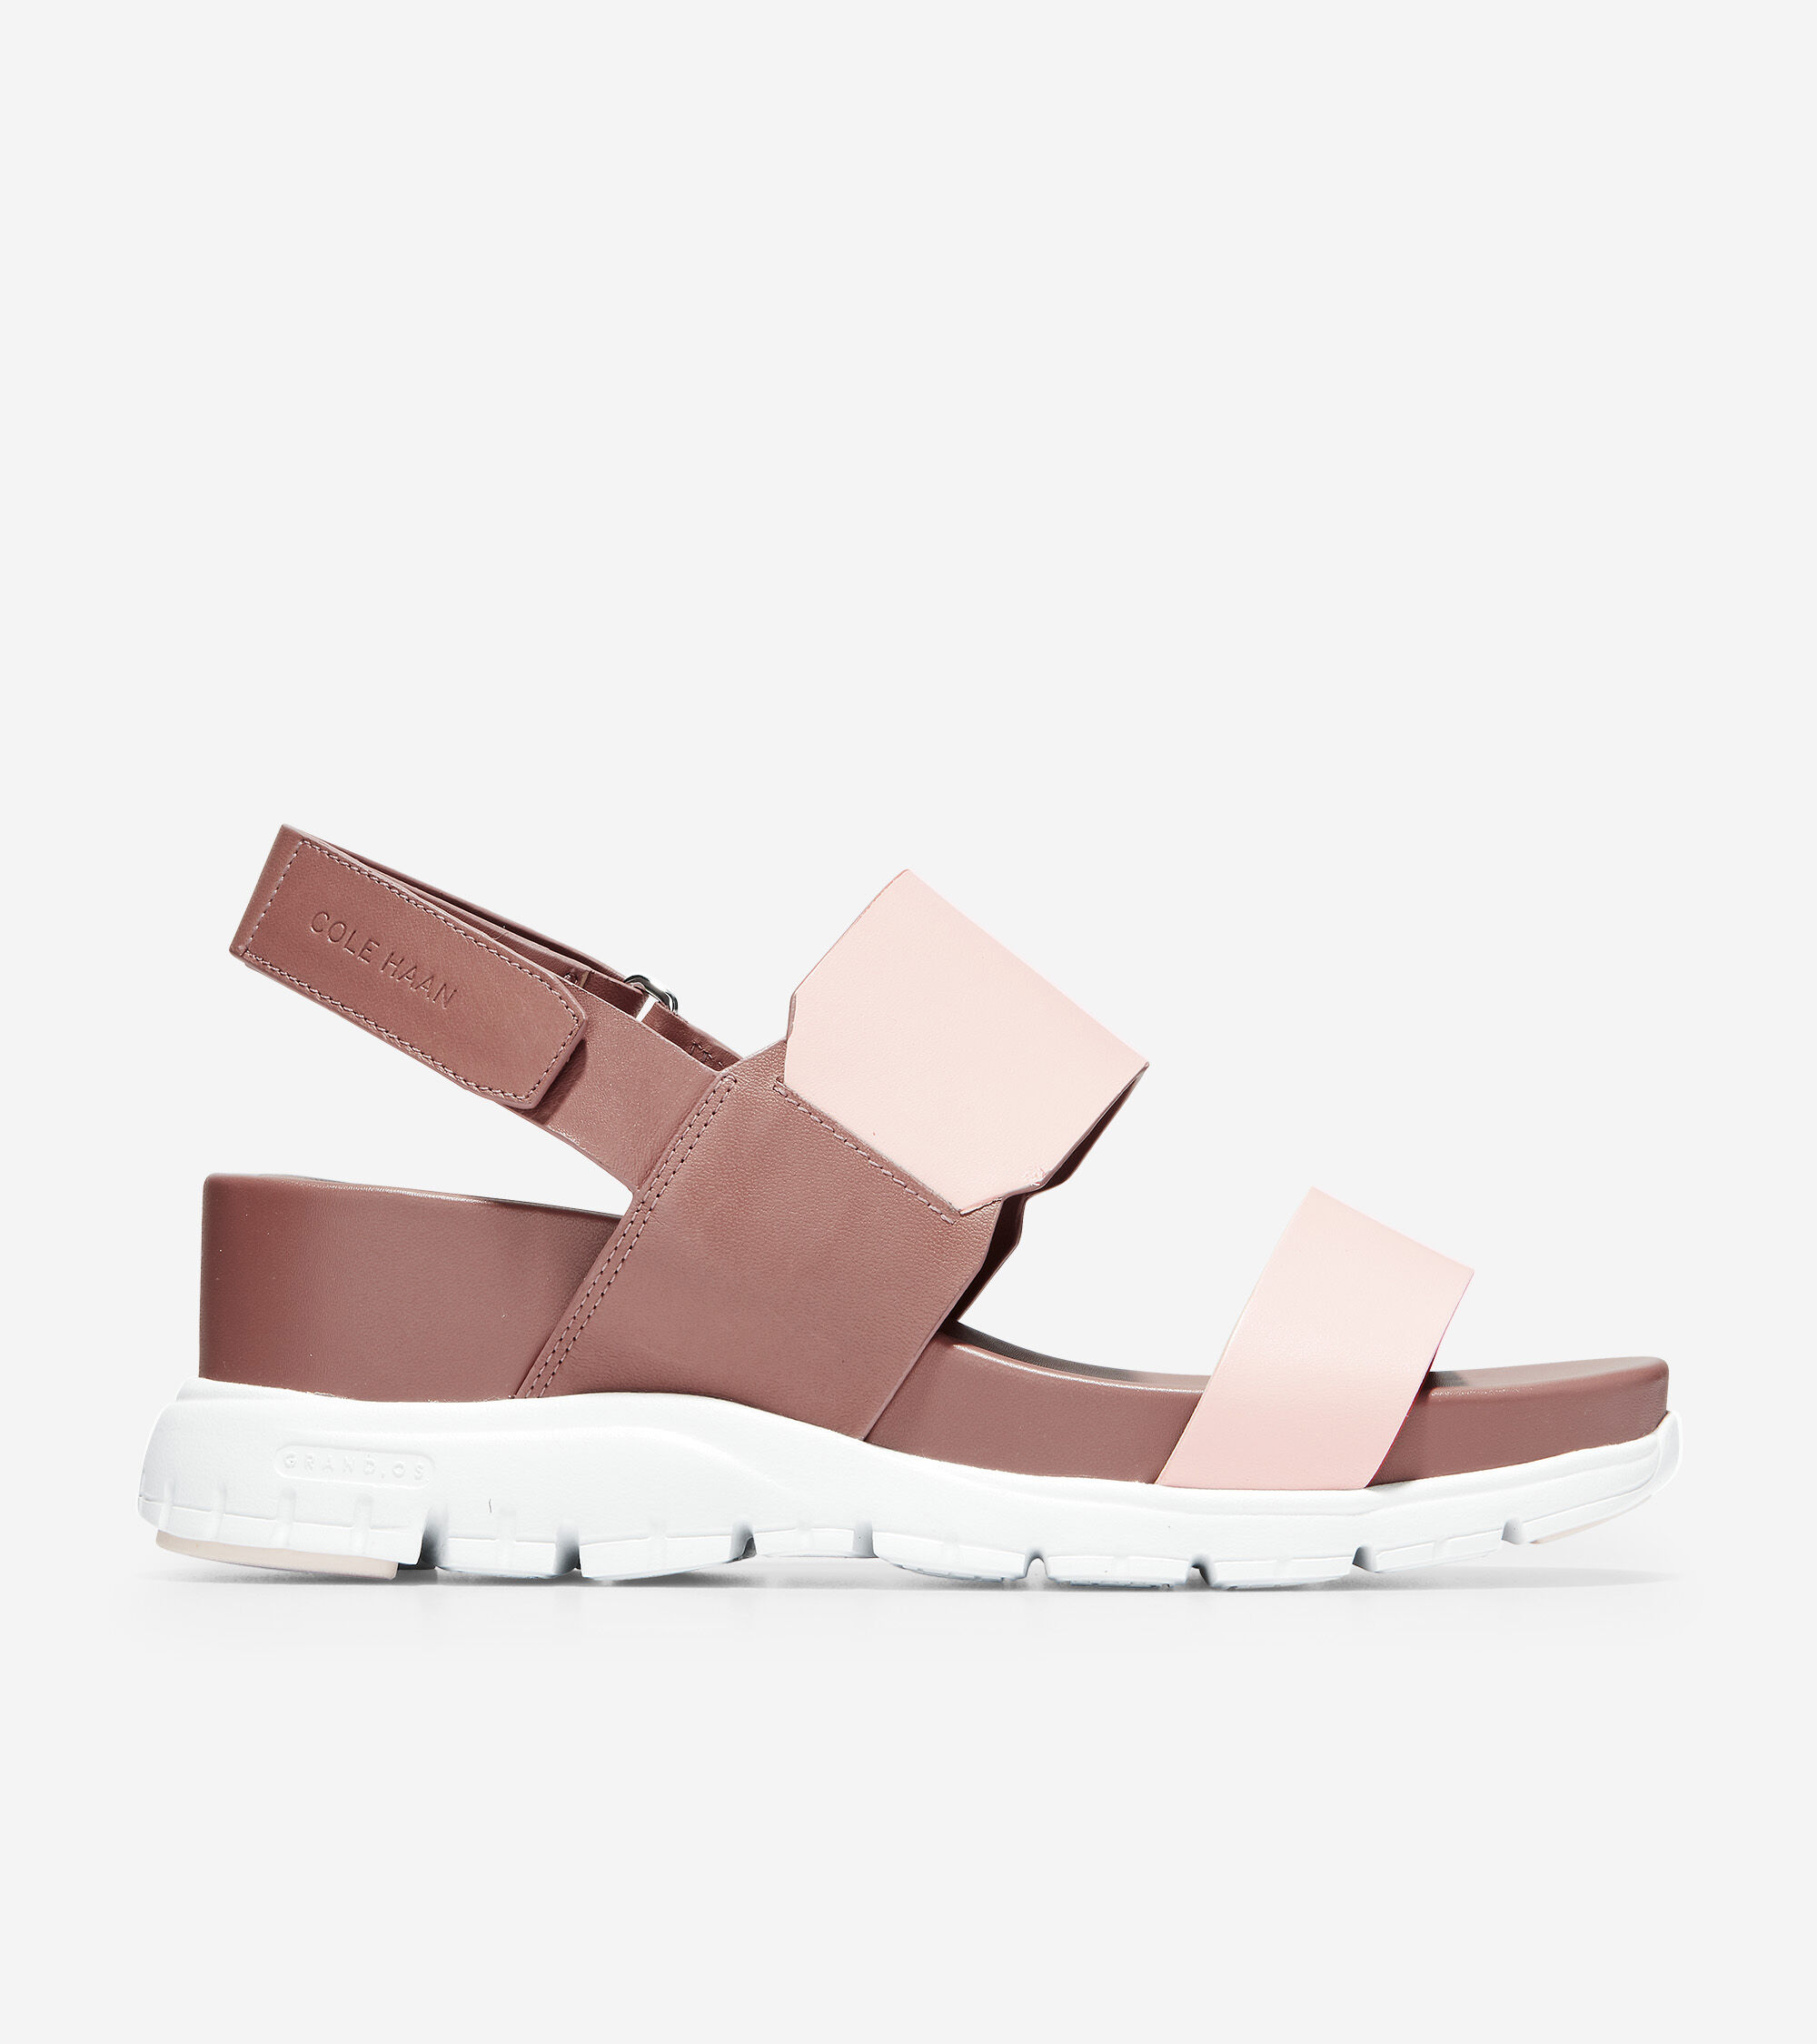 Leather upper with Velcro ankle strap for easy closure. Fully lined. Cushioned footbed. Rubber outsole plugs with Grand.ØS technology for ultimate comfort.